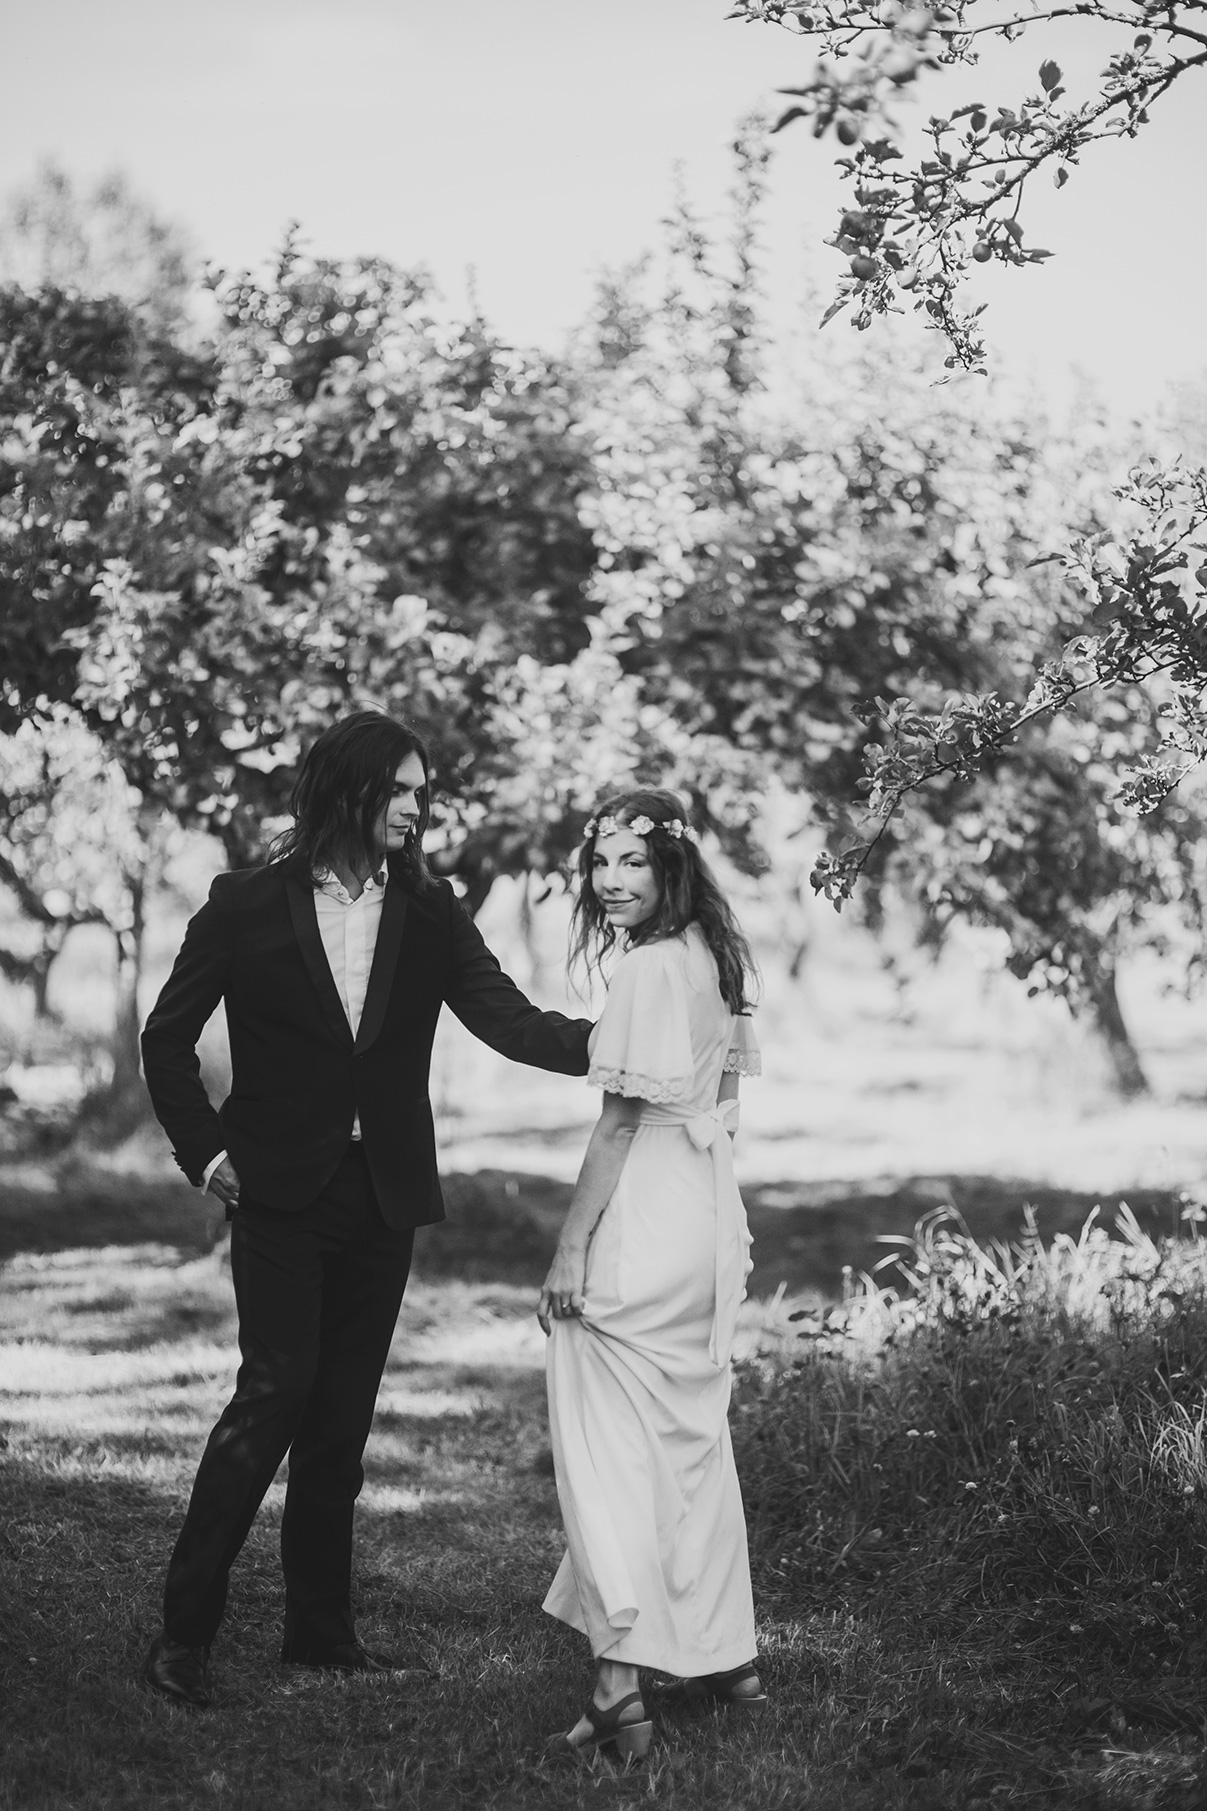 Anton's and Maria's bohemian wedding photo: Anna Malmberg n°101